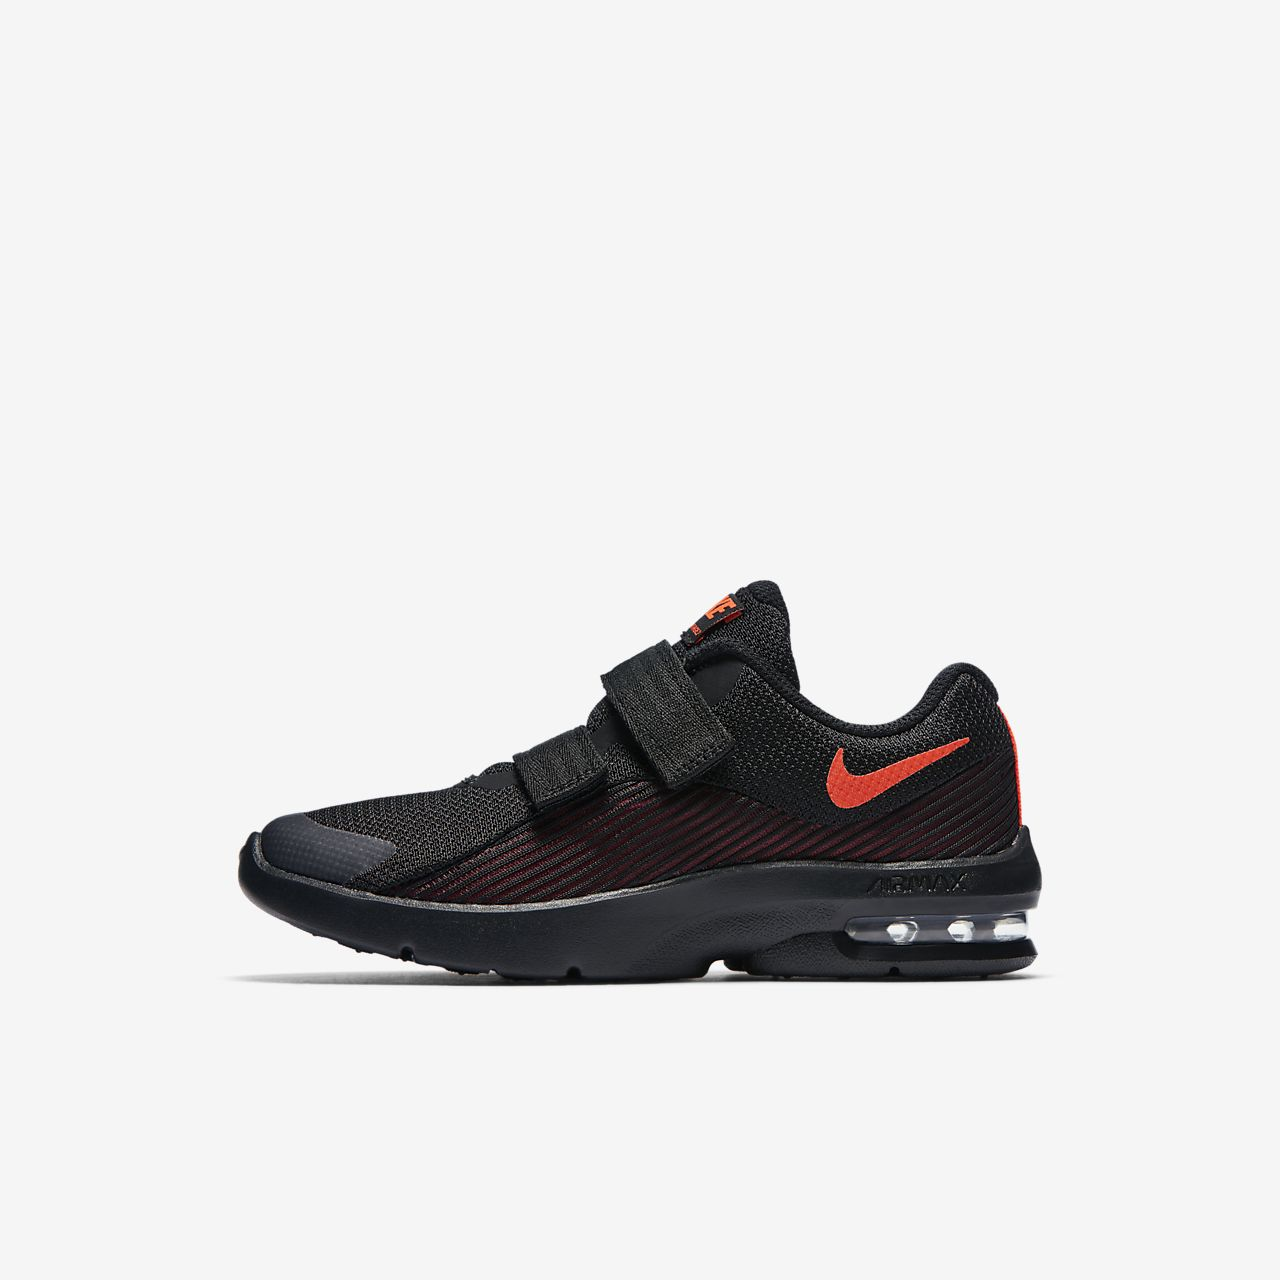 46a6ecc2340769 ... promo code for nike air max advantage 2 little kids shoe 8b906 58154